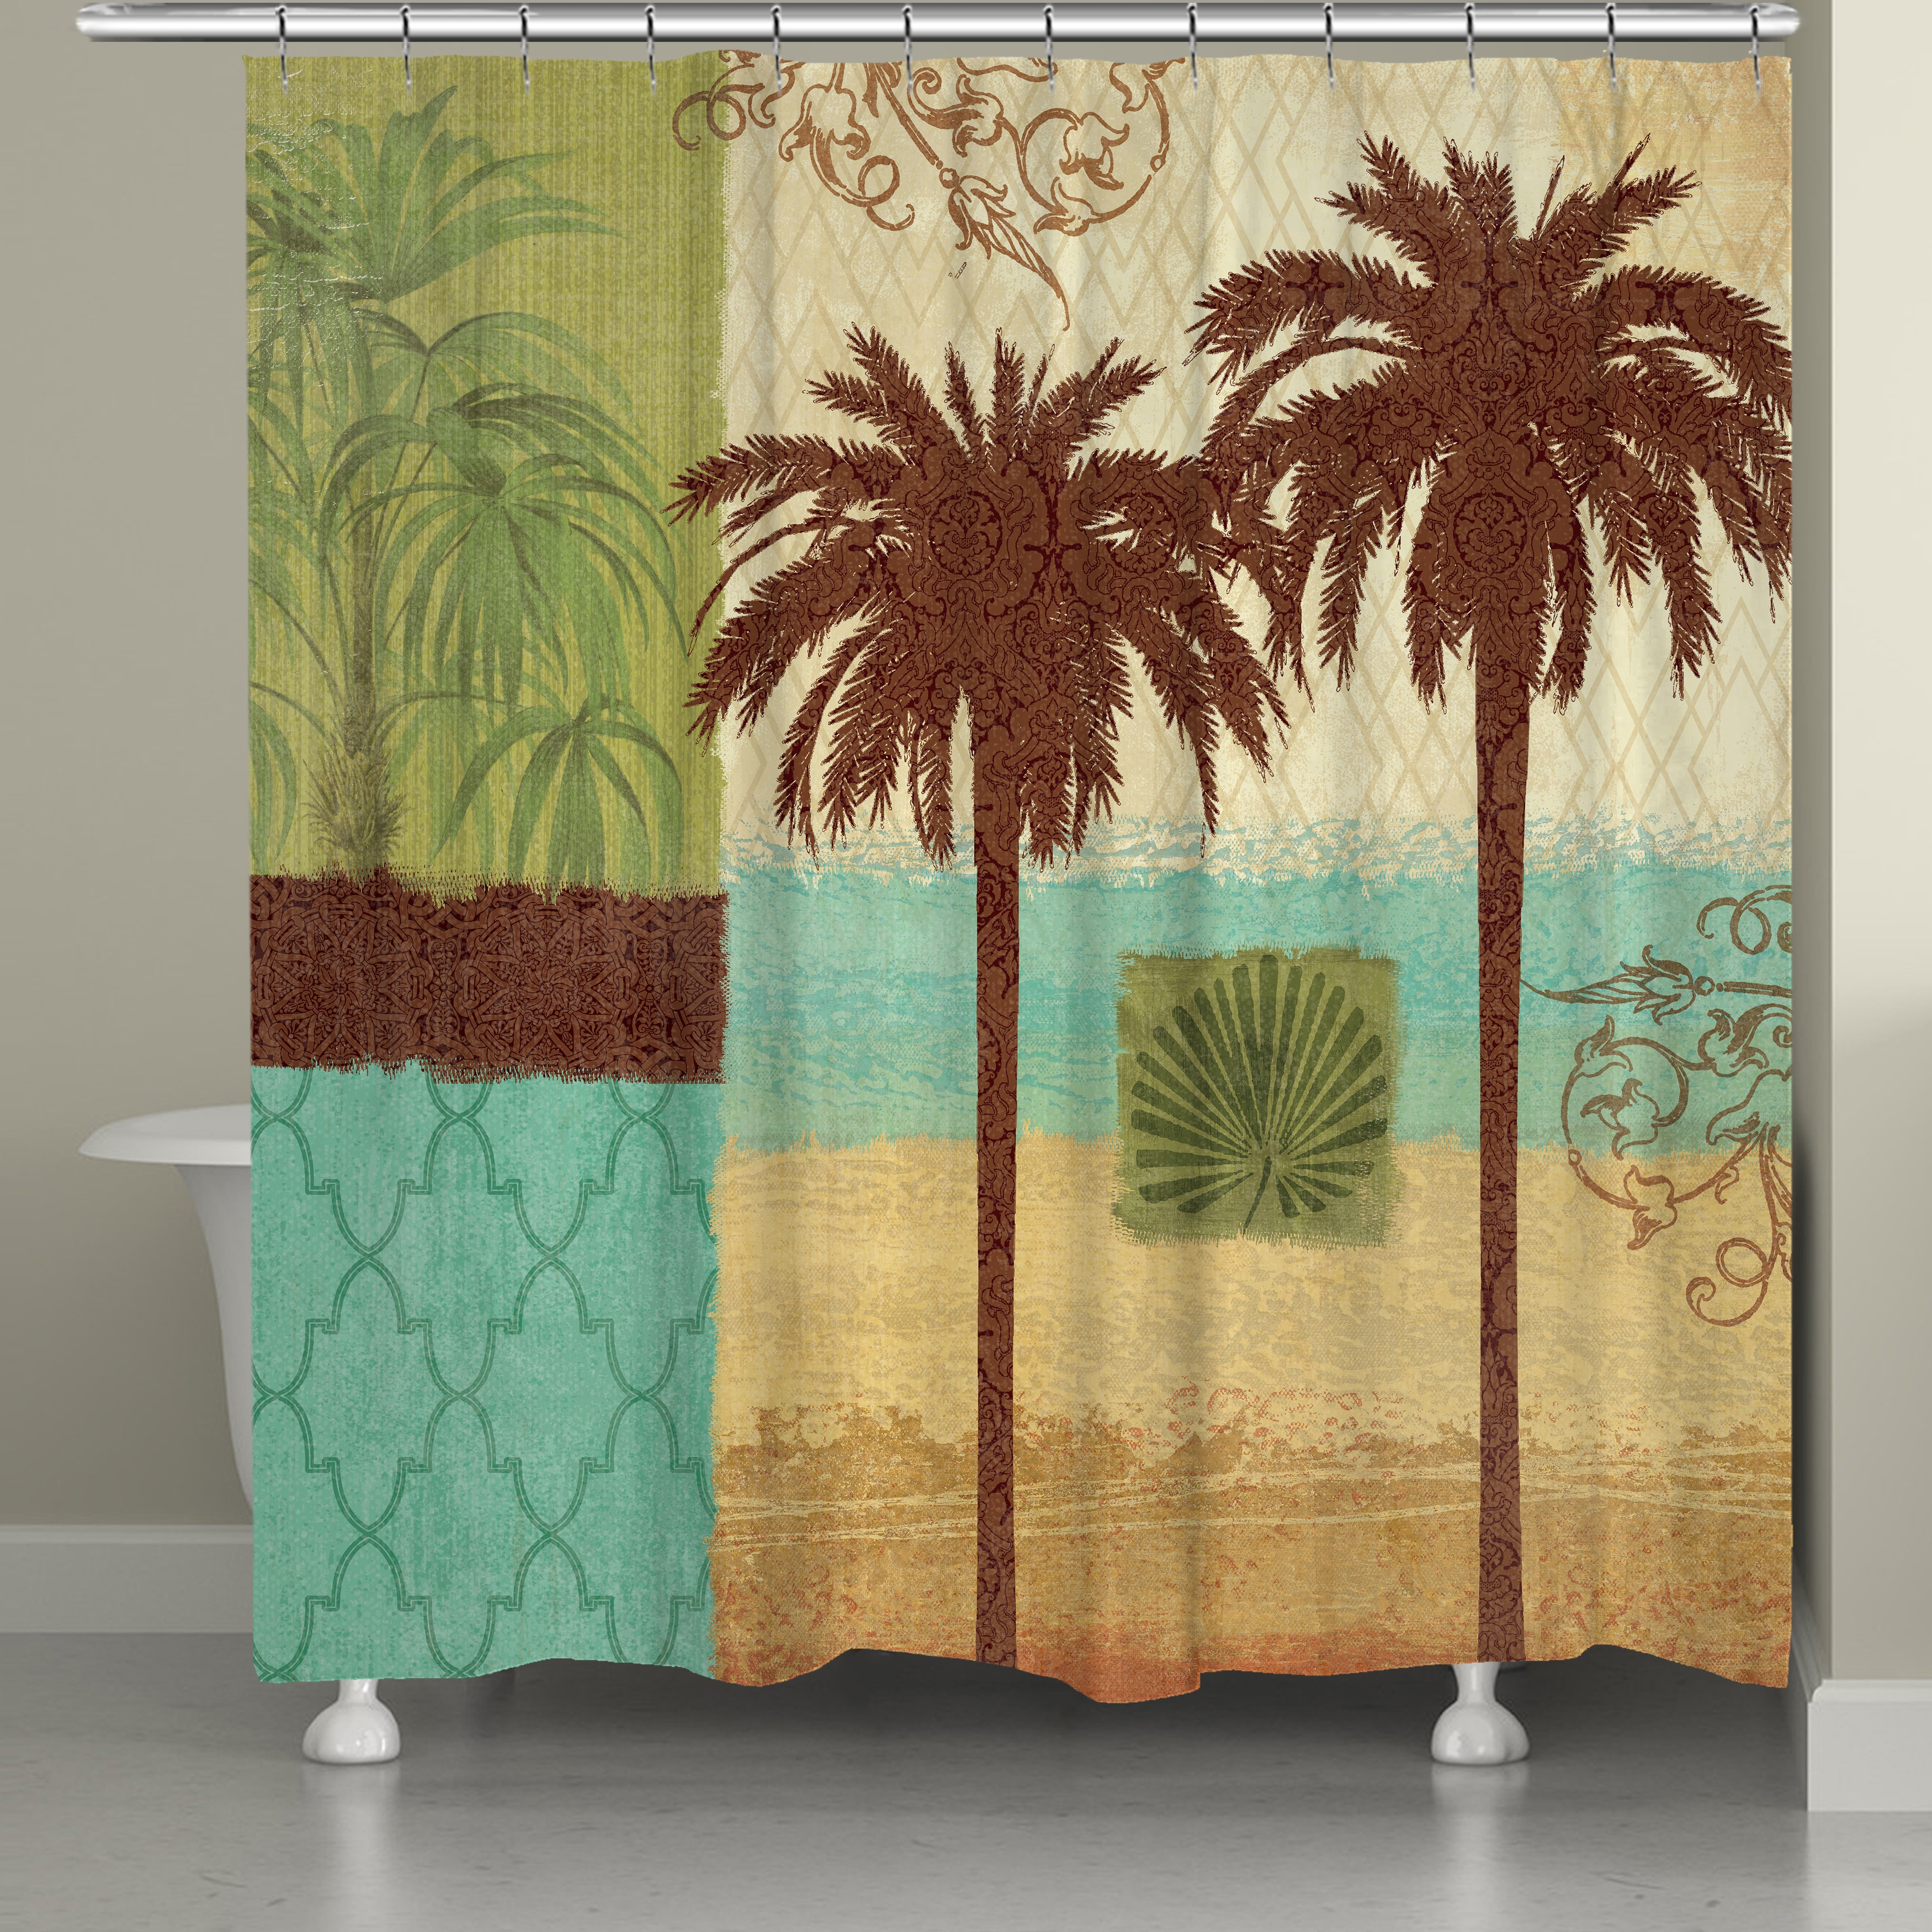 74 Shower Curtain Laural Home Palm Tree Resort Shower Curtain 71 Inch X 74 Inch